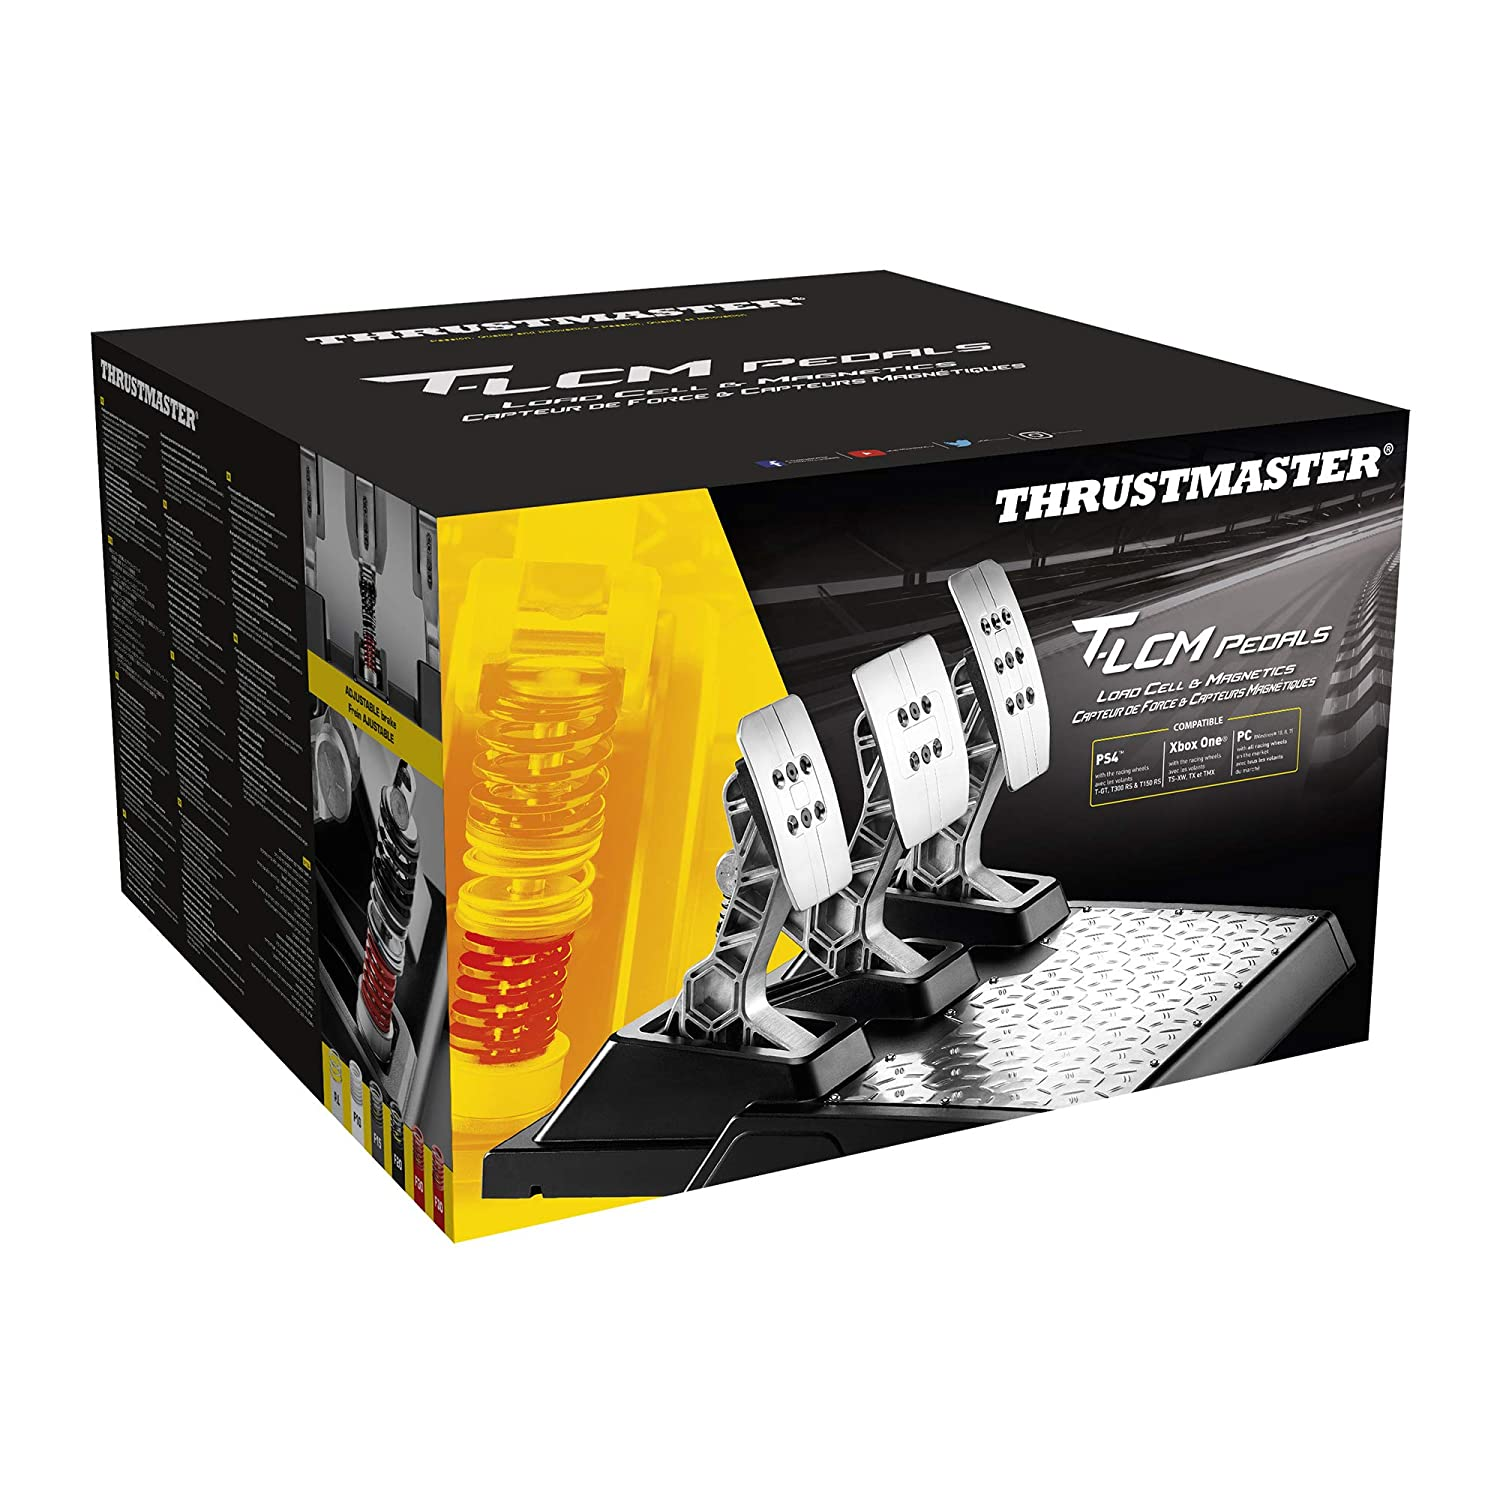 Thrustmaster T-LCM Pedals (PC, PS4, XOne)